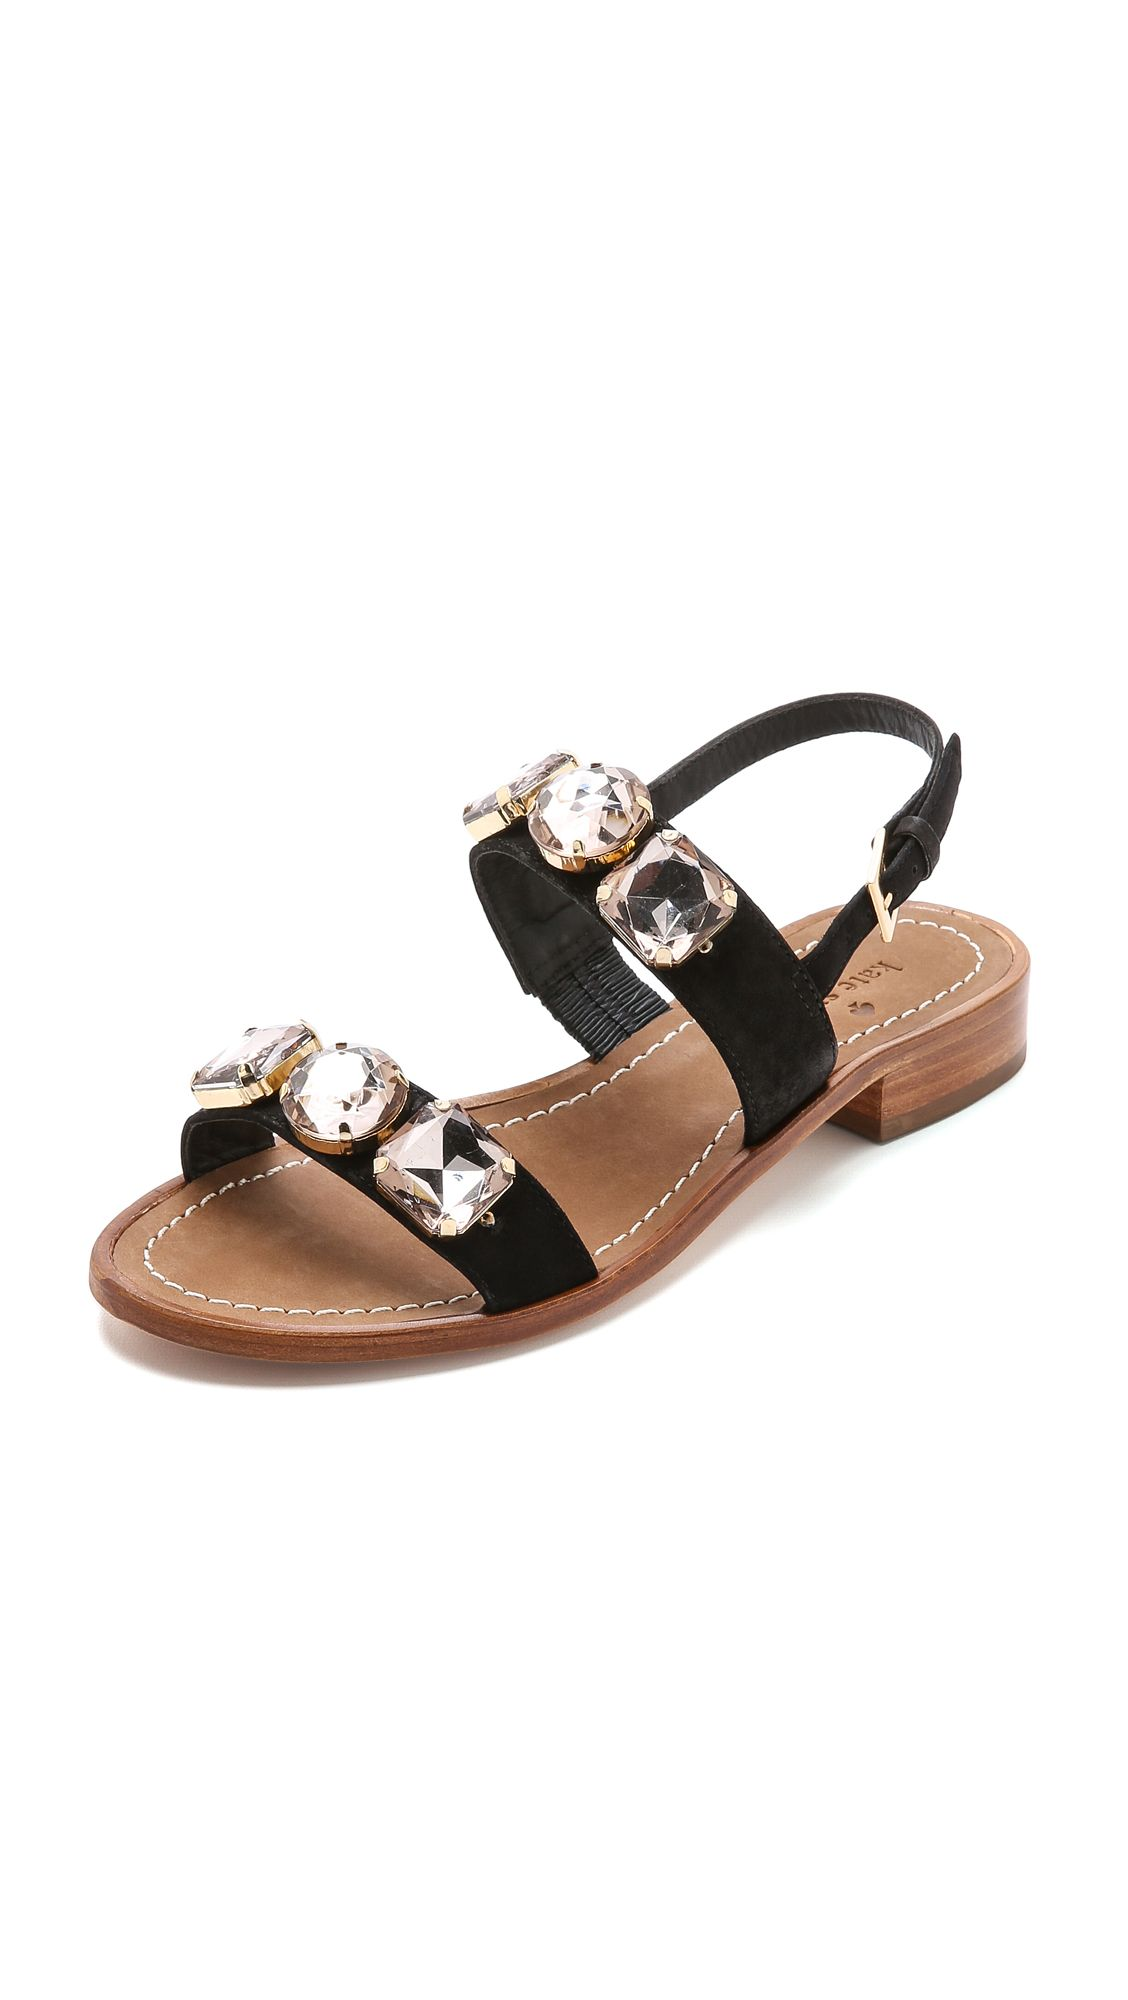 buy cheap browse Kate Spade New York Patent Leather Flat Sandals very cheap sale online from china cheap online latest cheap online vuS5i